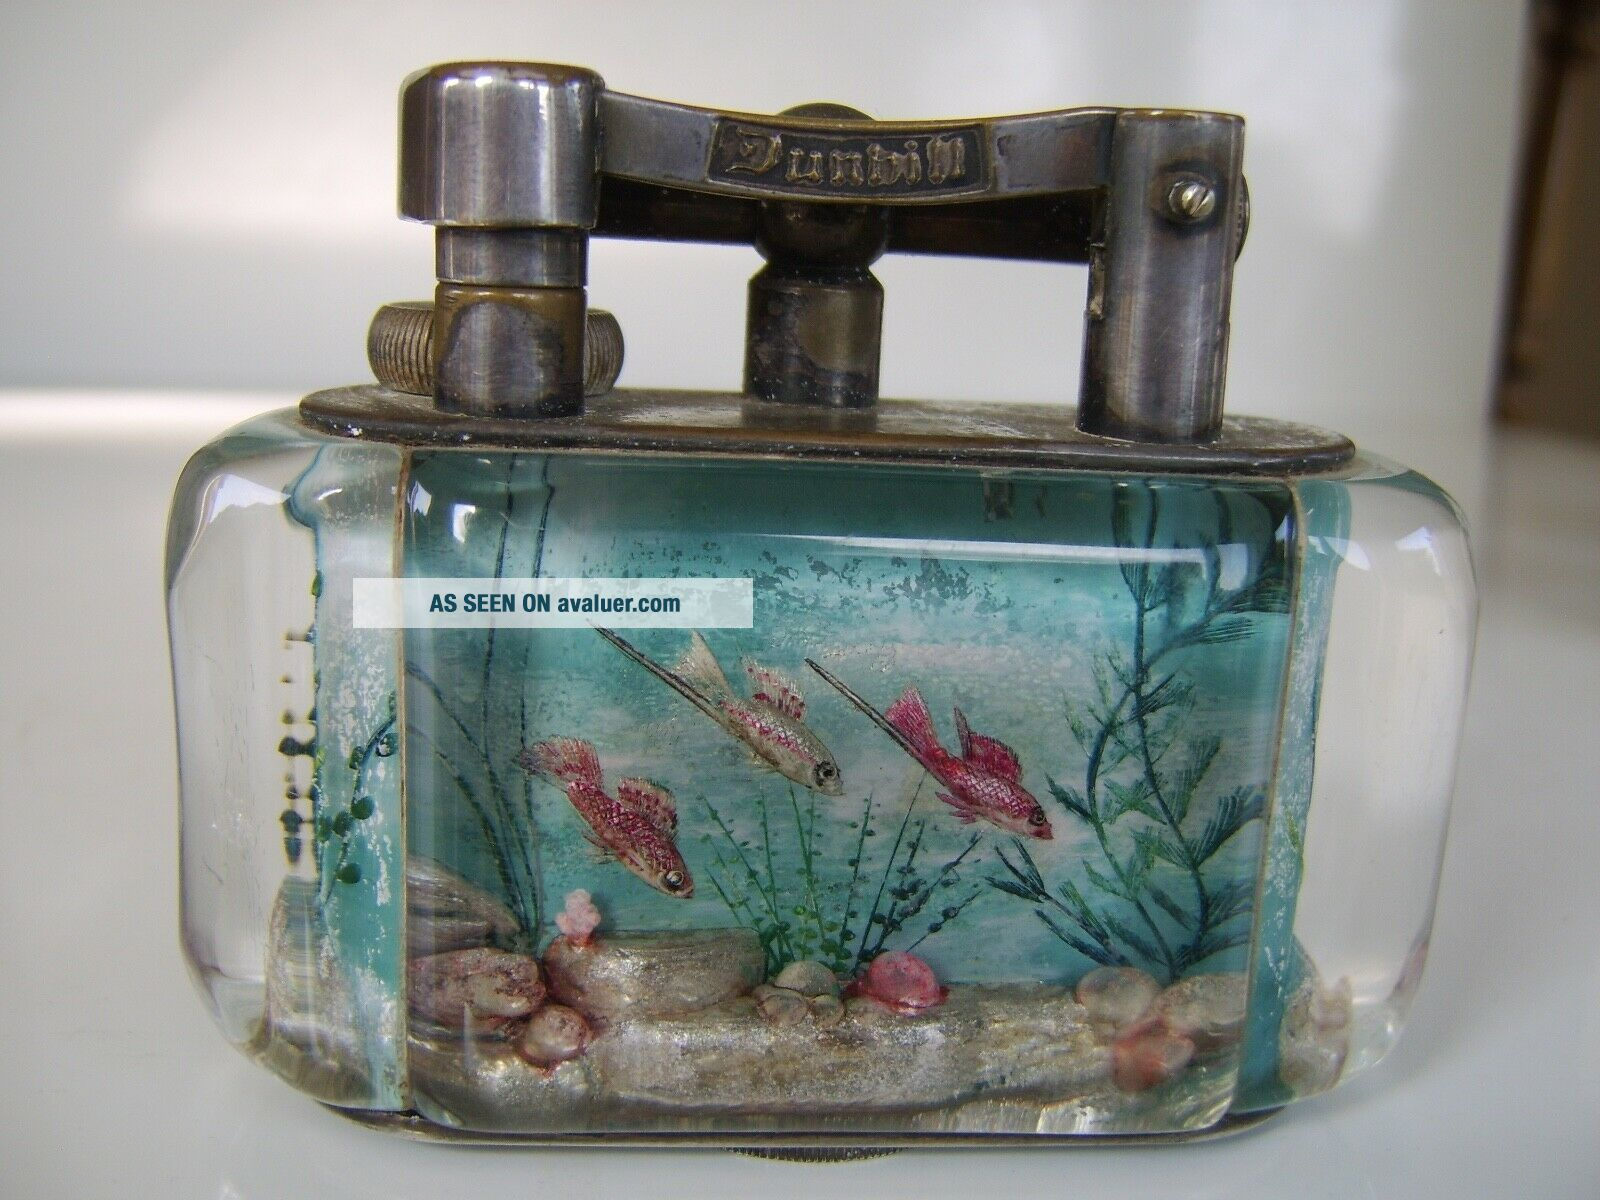 Rare Large Old Dunhill Aquarium Table Lighter Made in England Circa 1950s